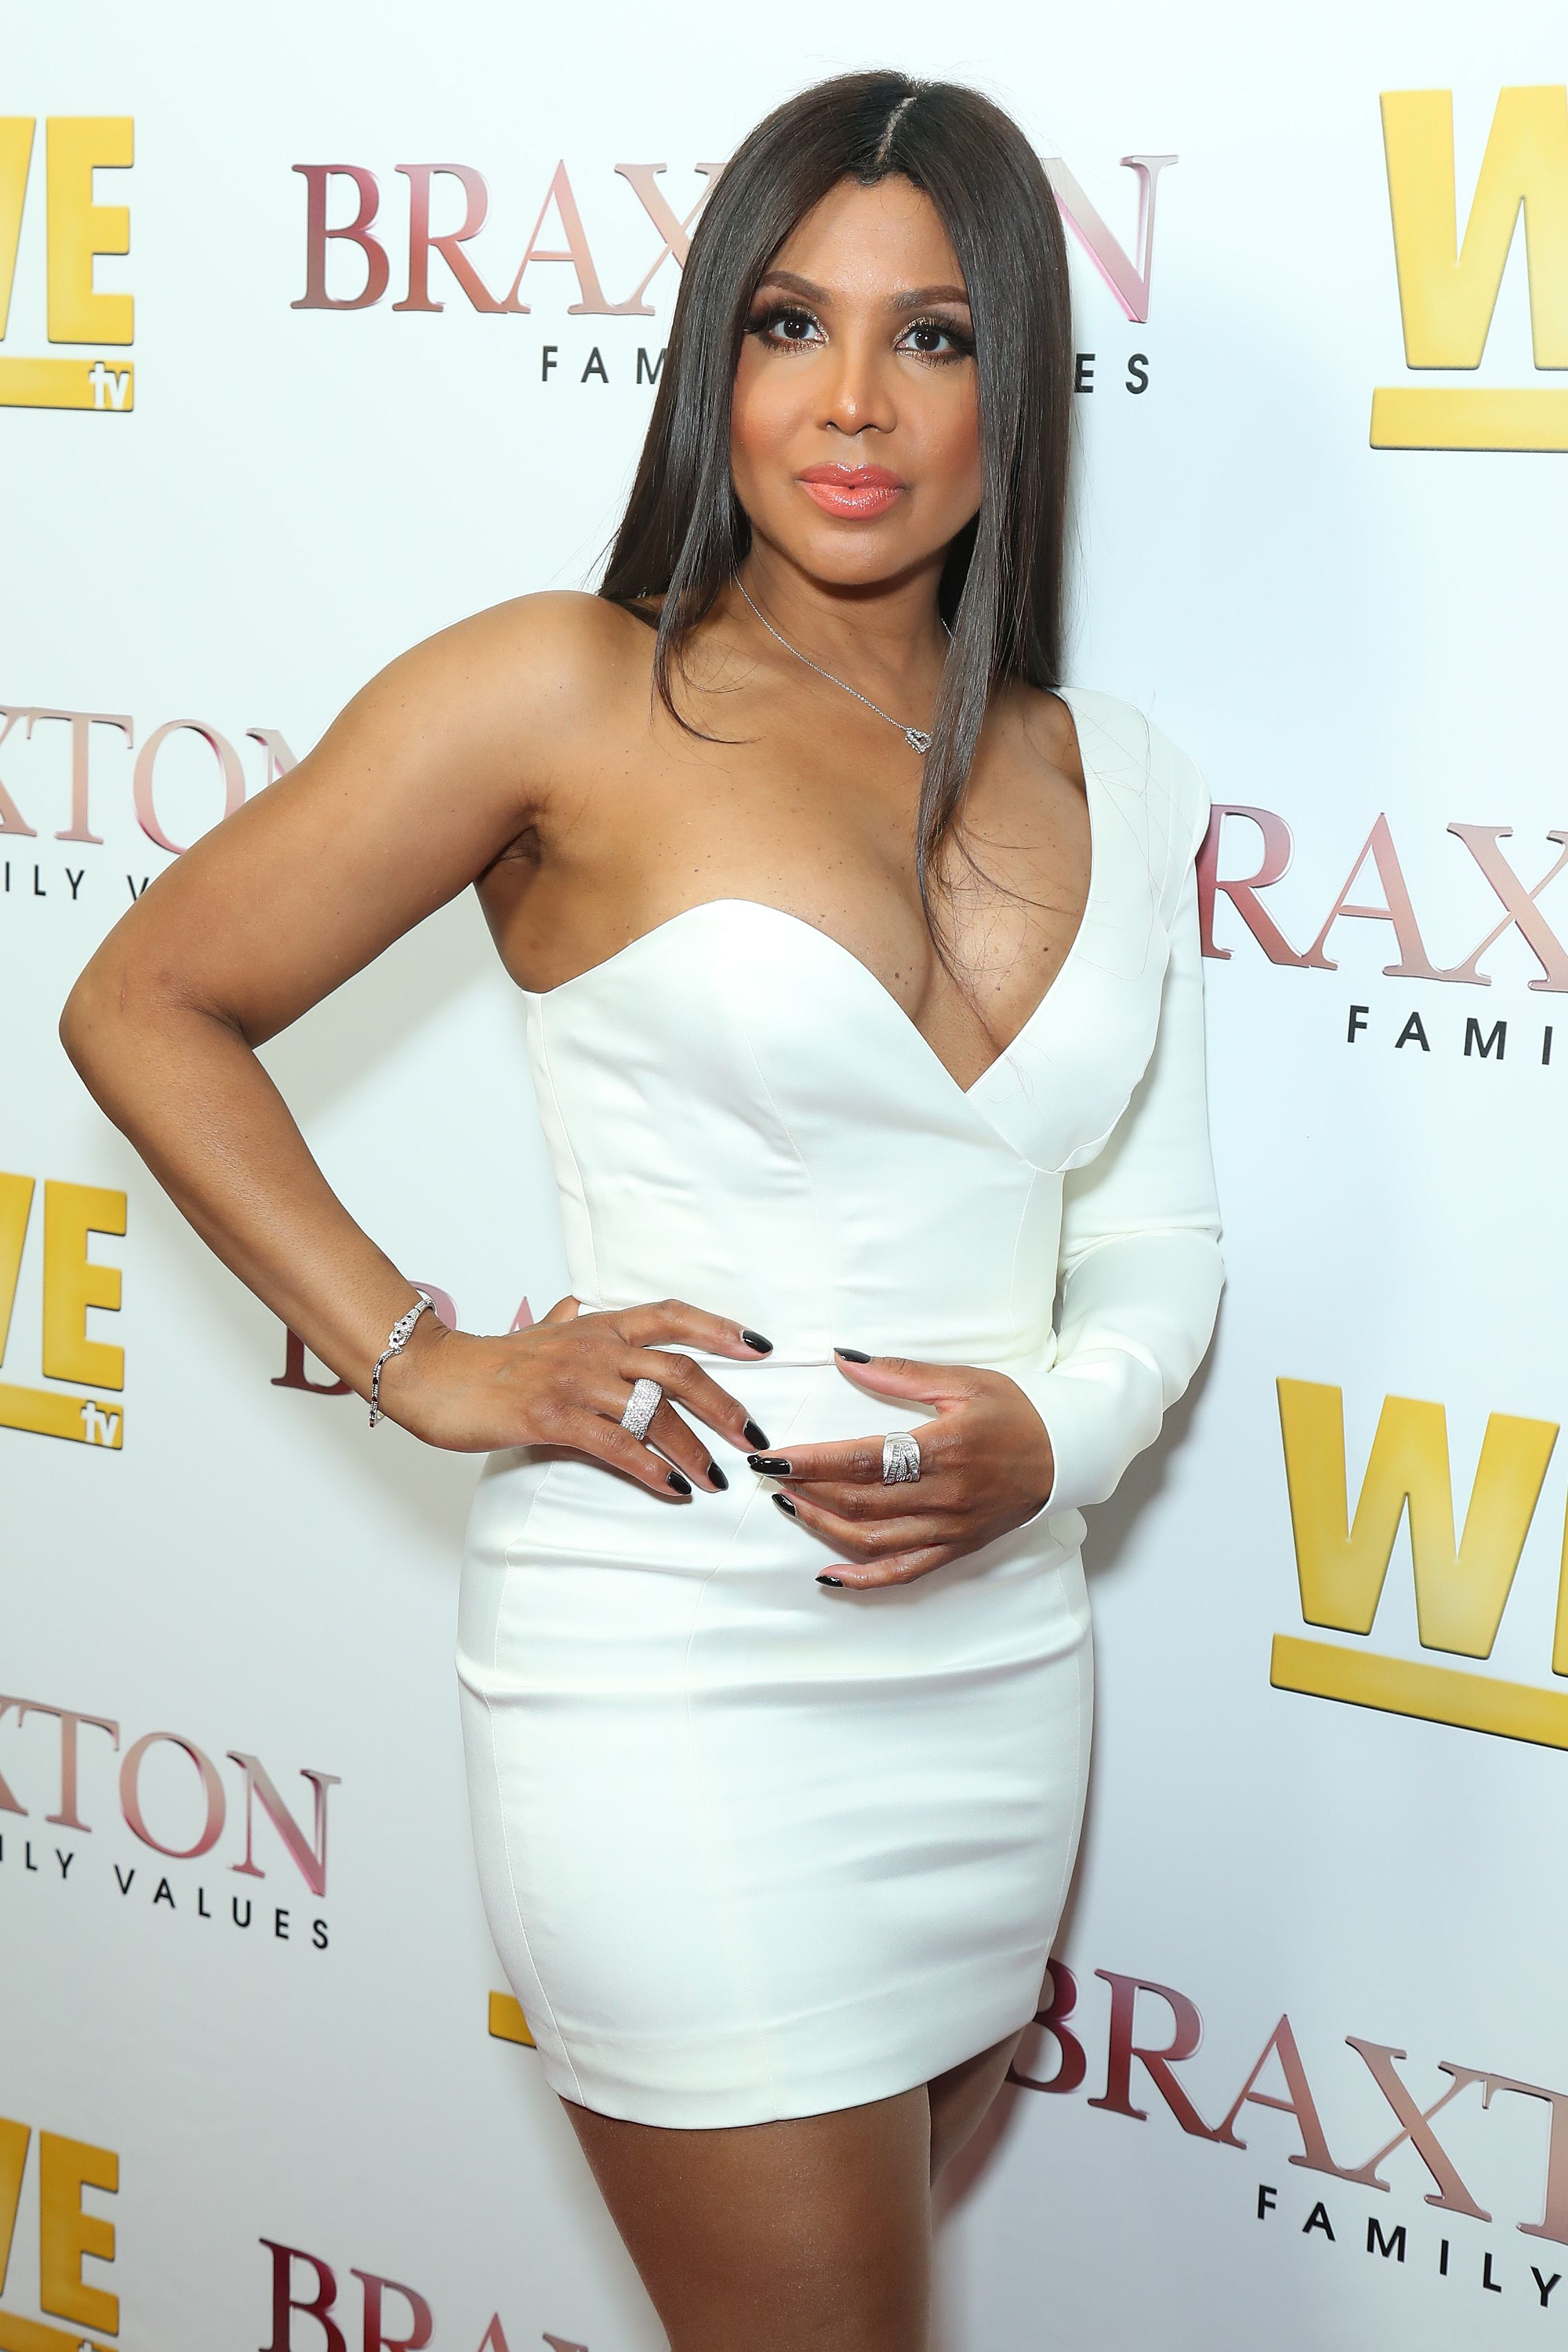 Toni Braxton's Niece Lauren Braxton's Cause Of Death Revealed As Overdose